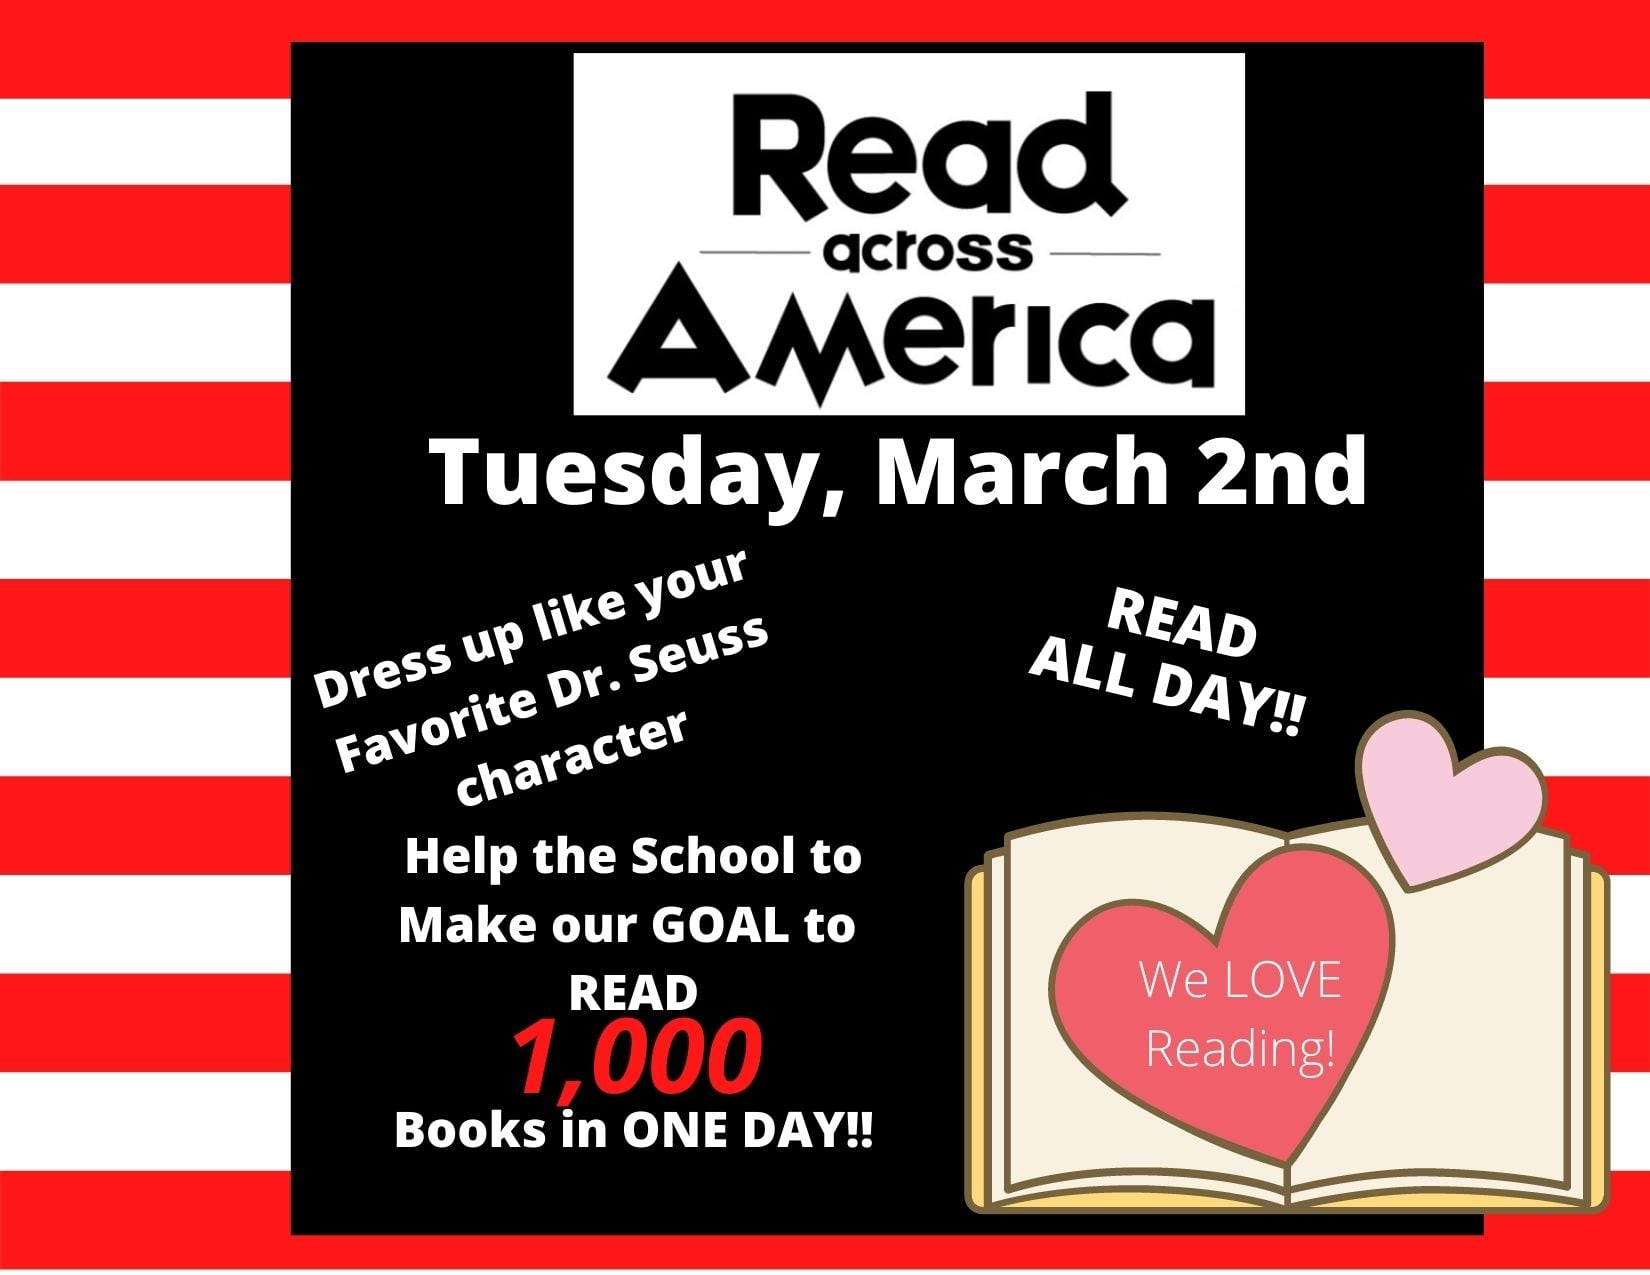 Boevers Elementary - A Community School - and many other Union Schools - are celebrating Read Across America this week with a number of activities, and especially today: the birthday of Dr. Seuss.